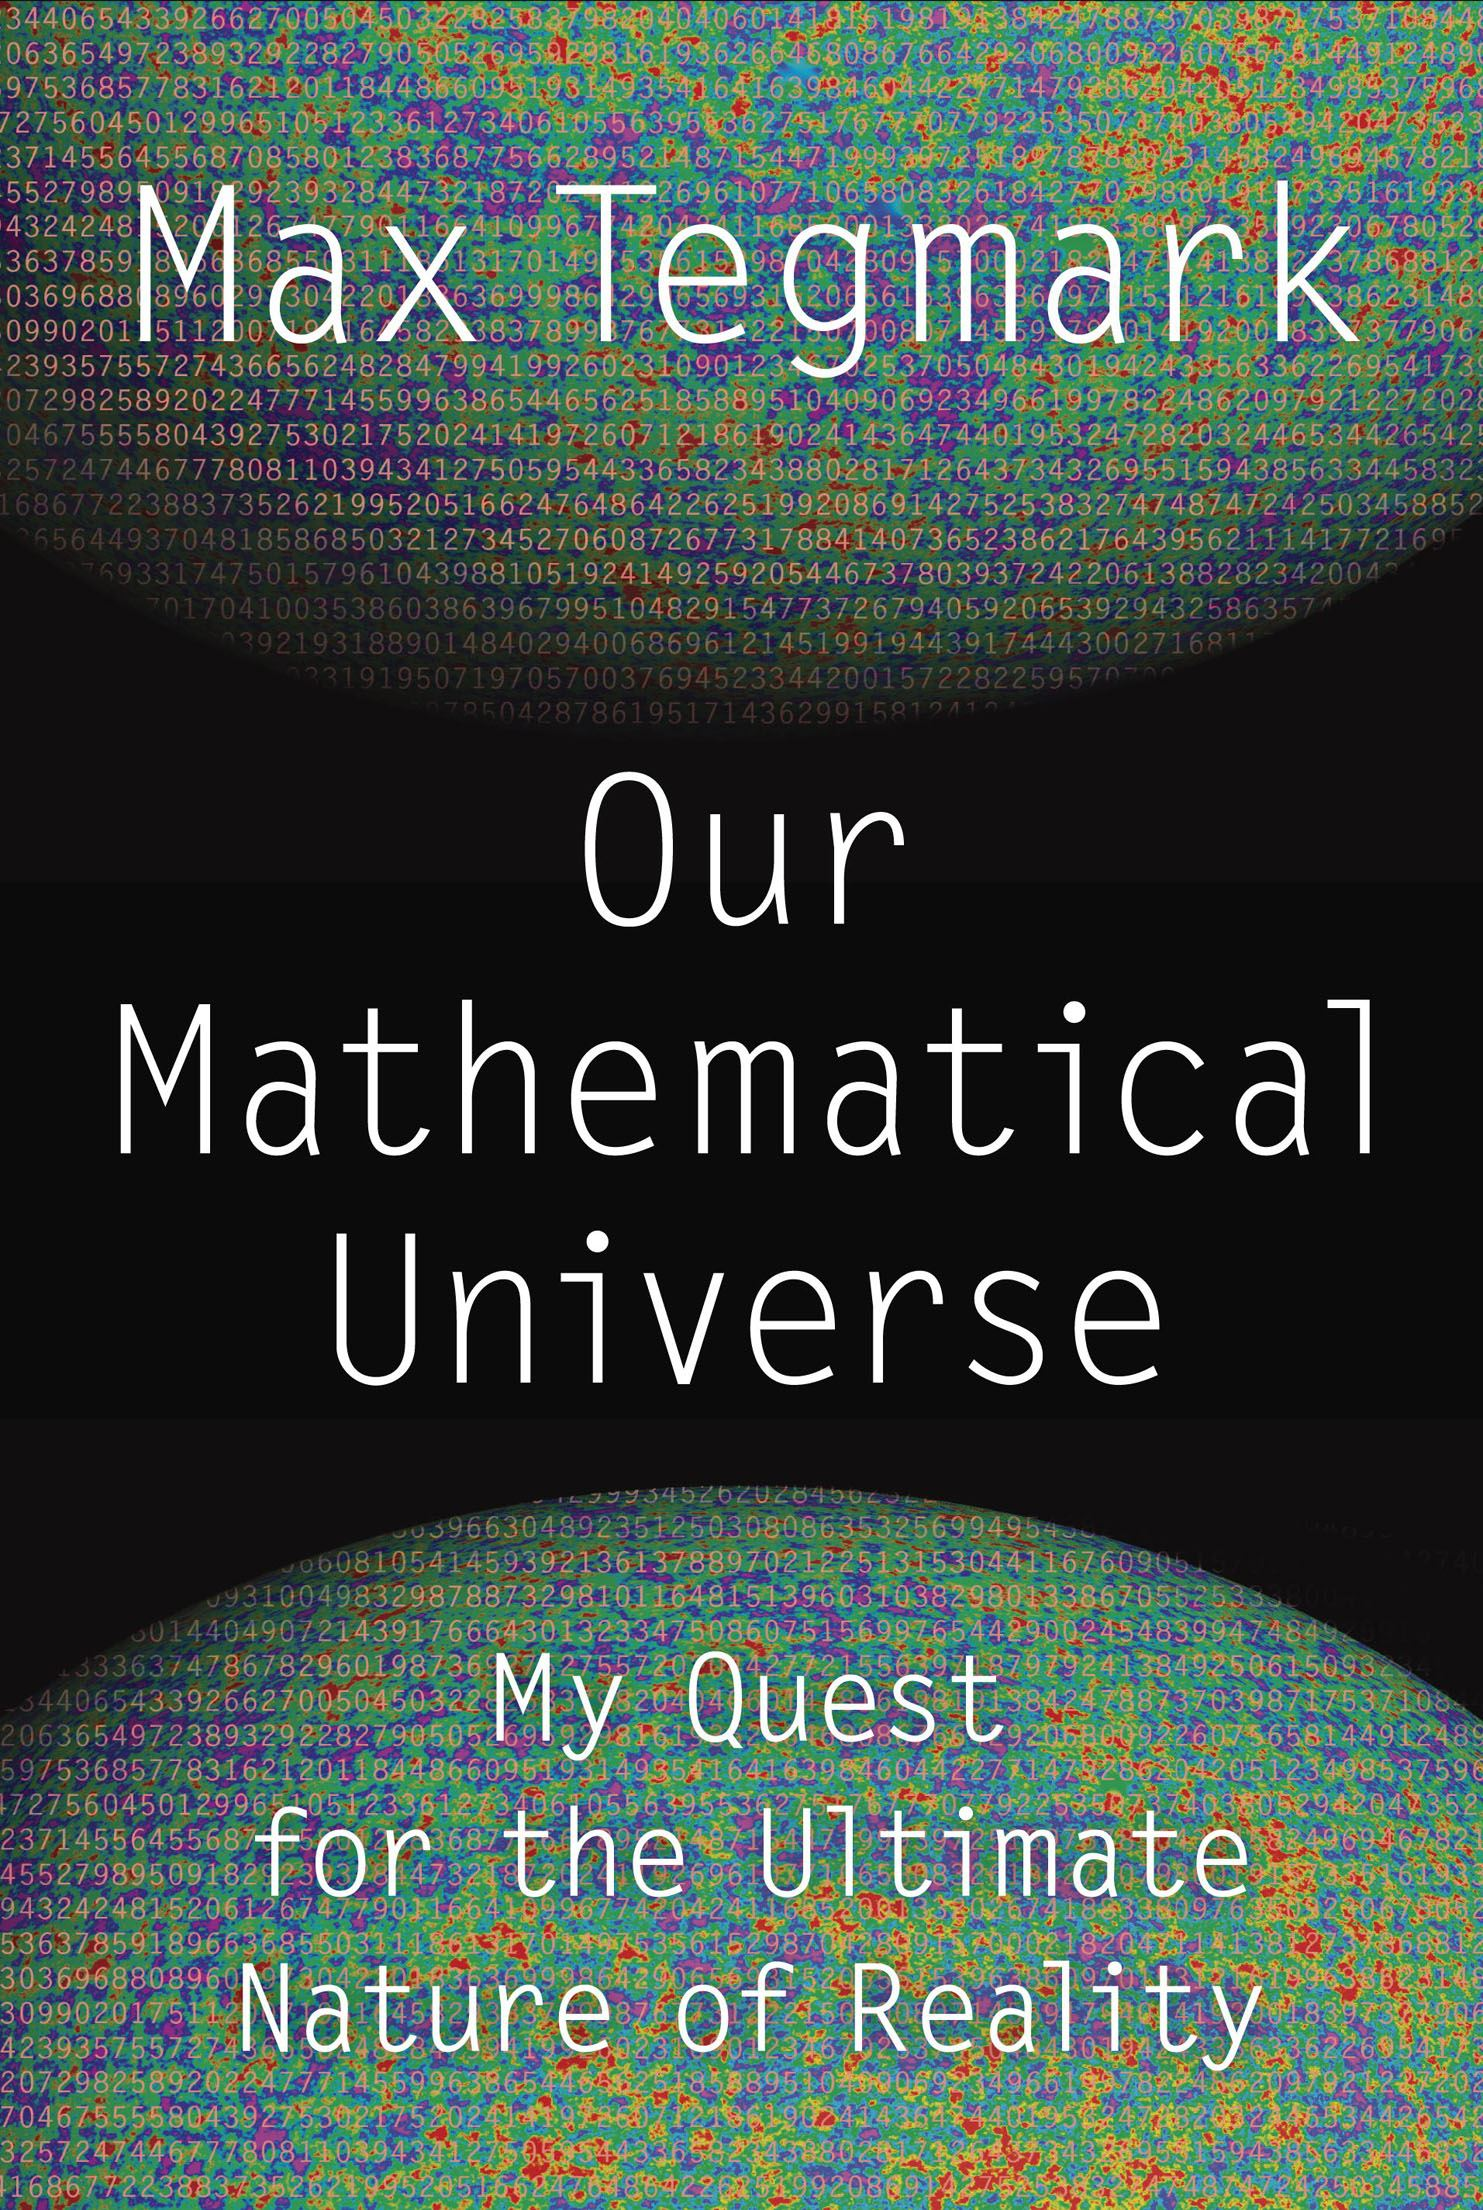 our-mathematical-universe-by-max-tegmark